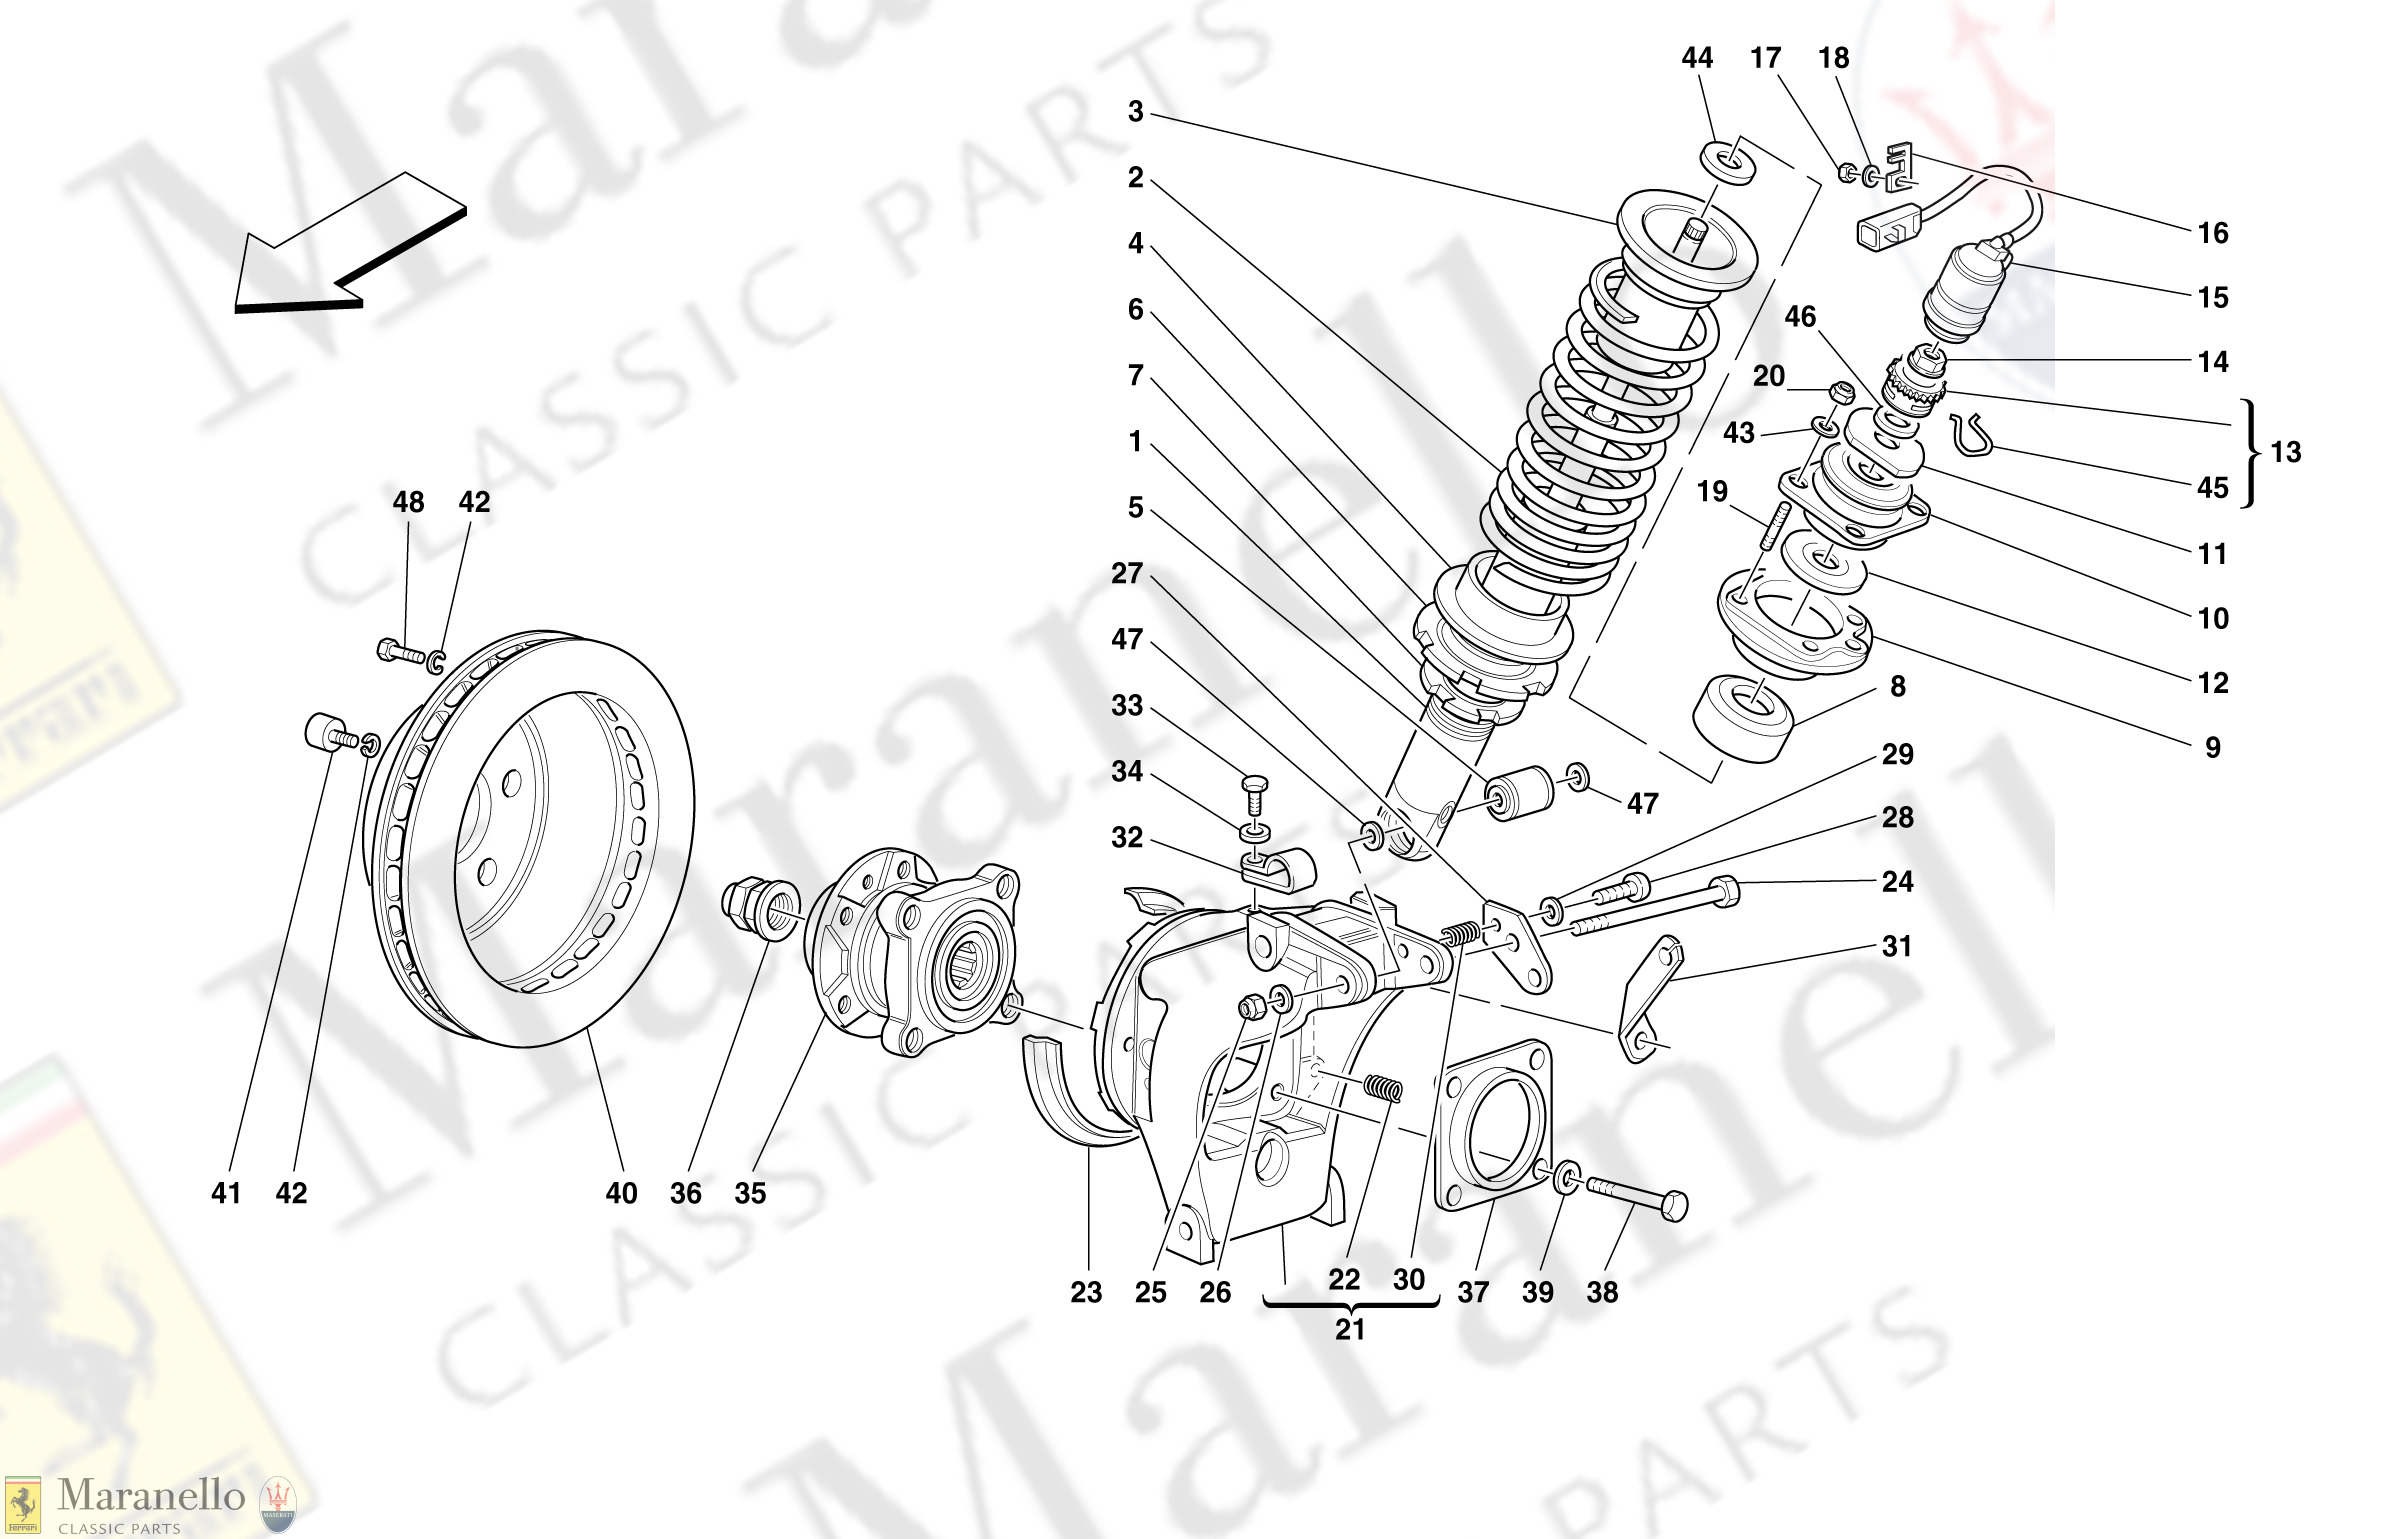 045 - Rear Suspension - Shock Absorber And Brake Disc